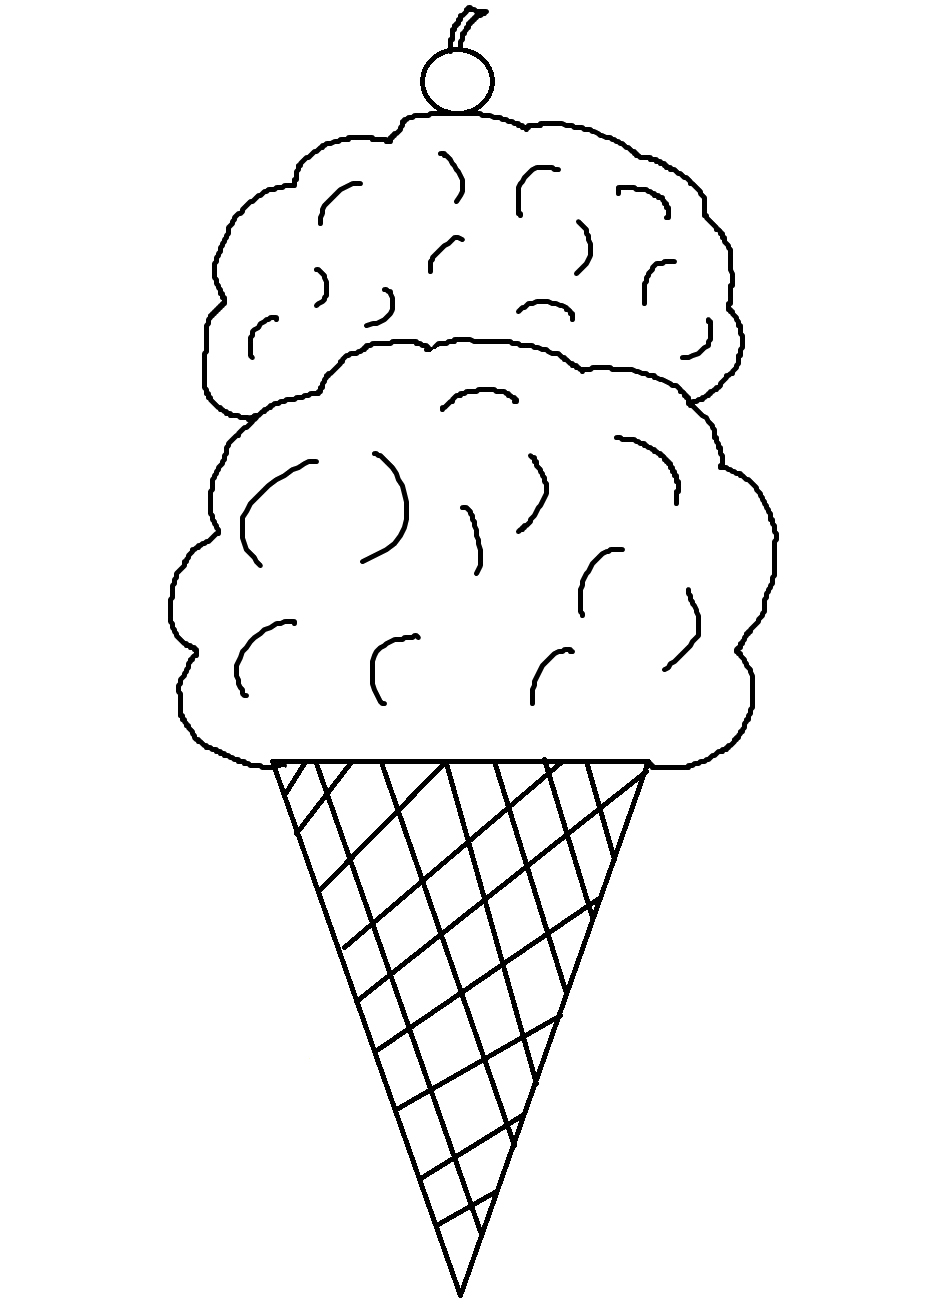 Wild image intended for ice cream cone printable